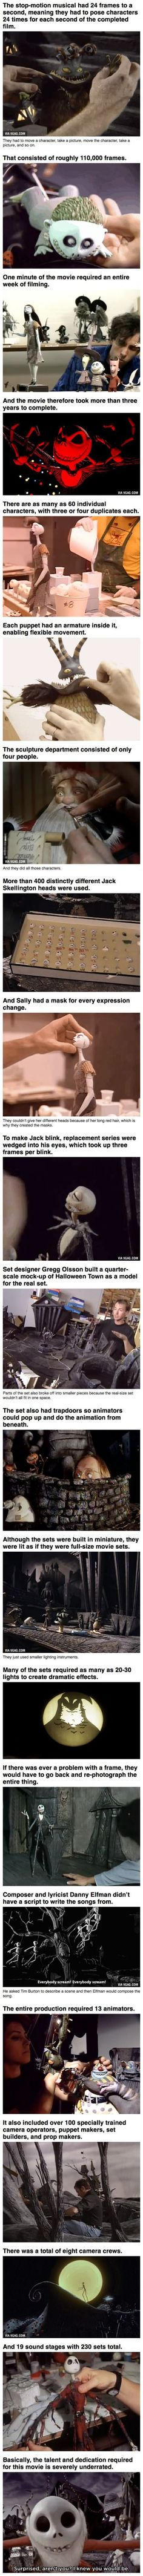 The Nightmare Before Christmas: Behind The Scenes… very cool. #christmasfacts